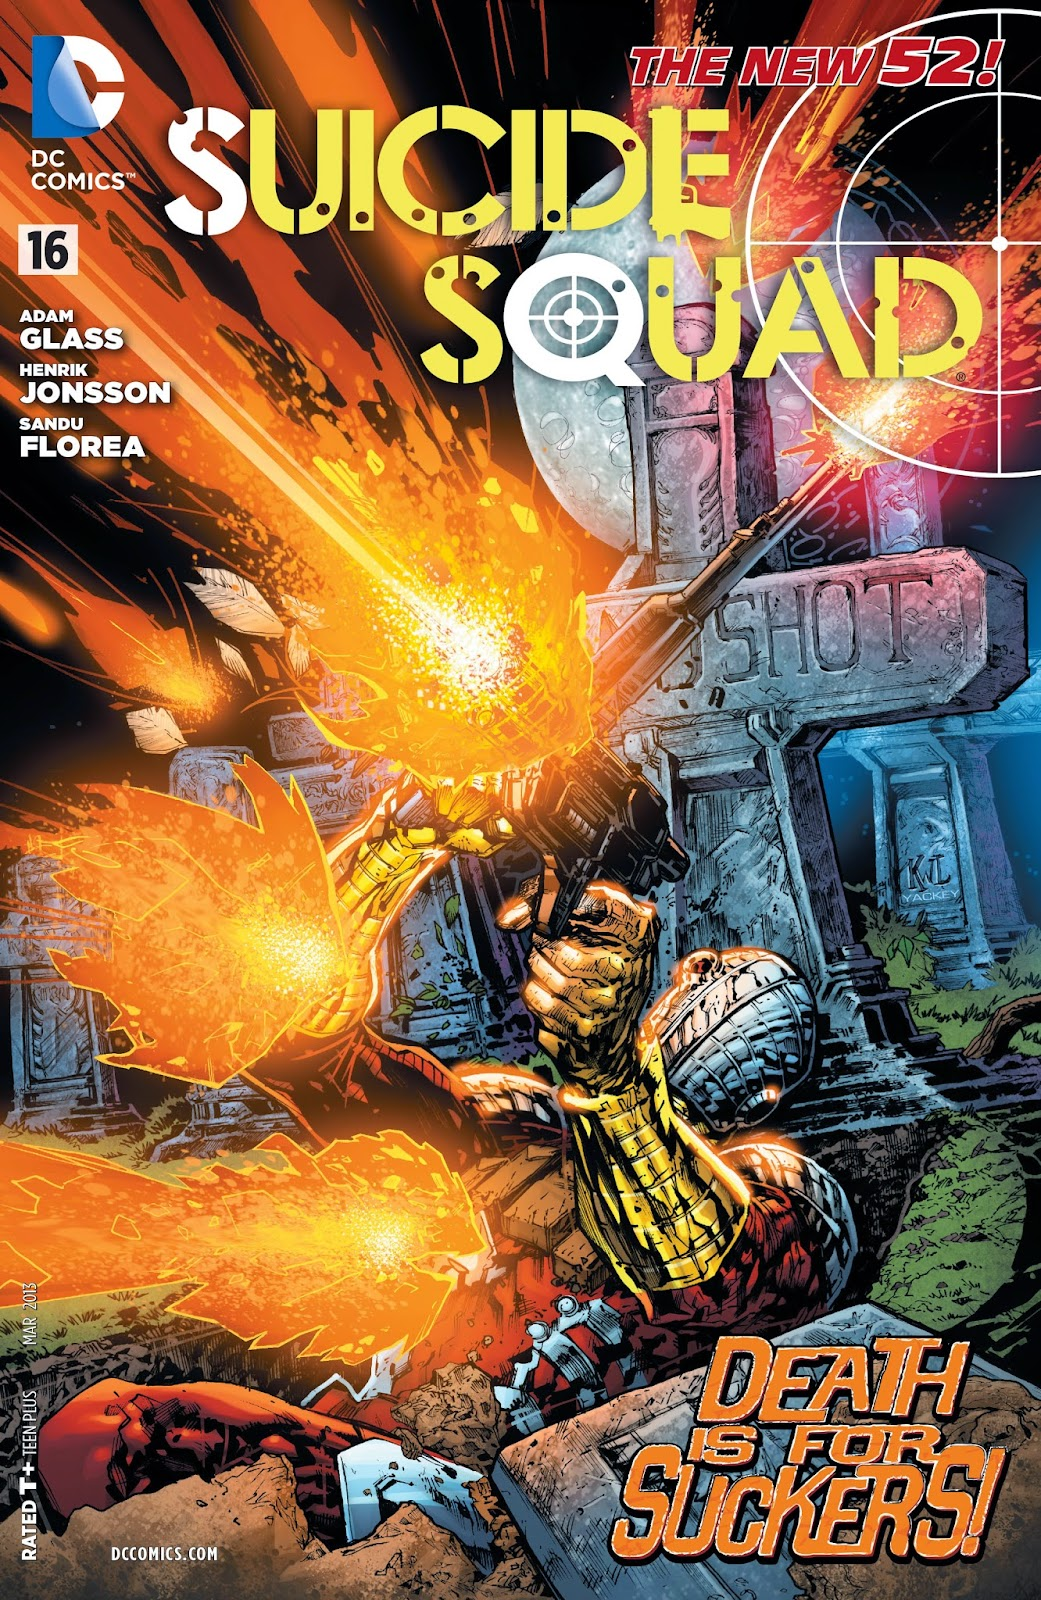 ADN Collections: The NEW 52 Story: Suicide Squad [Parte 4]